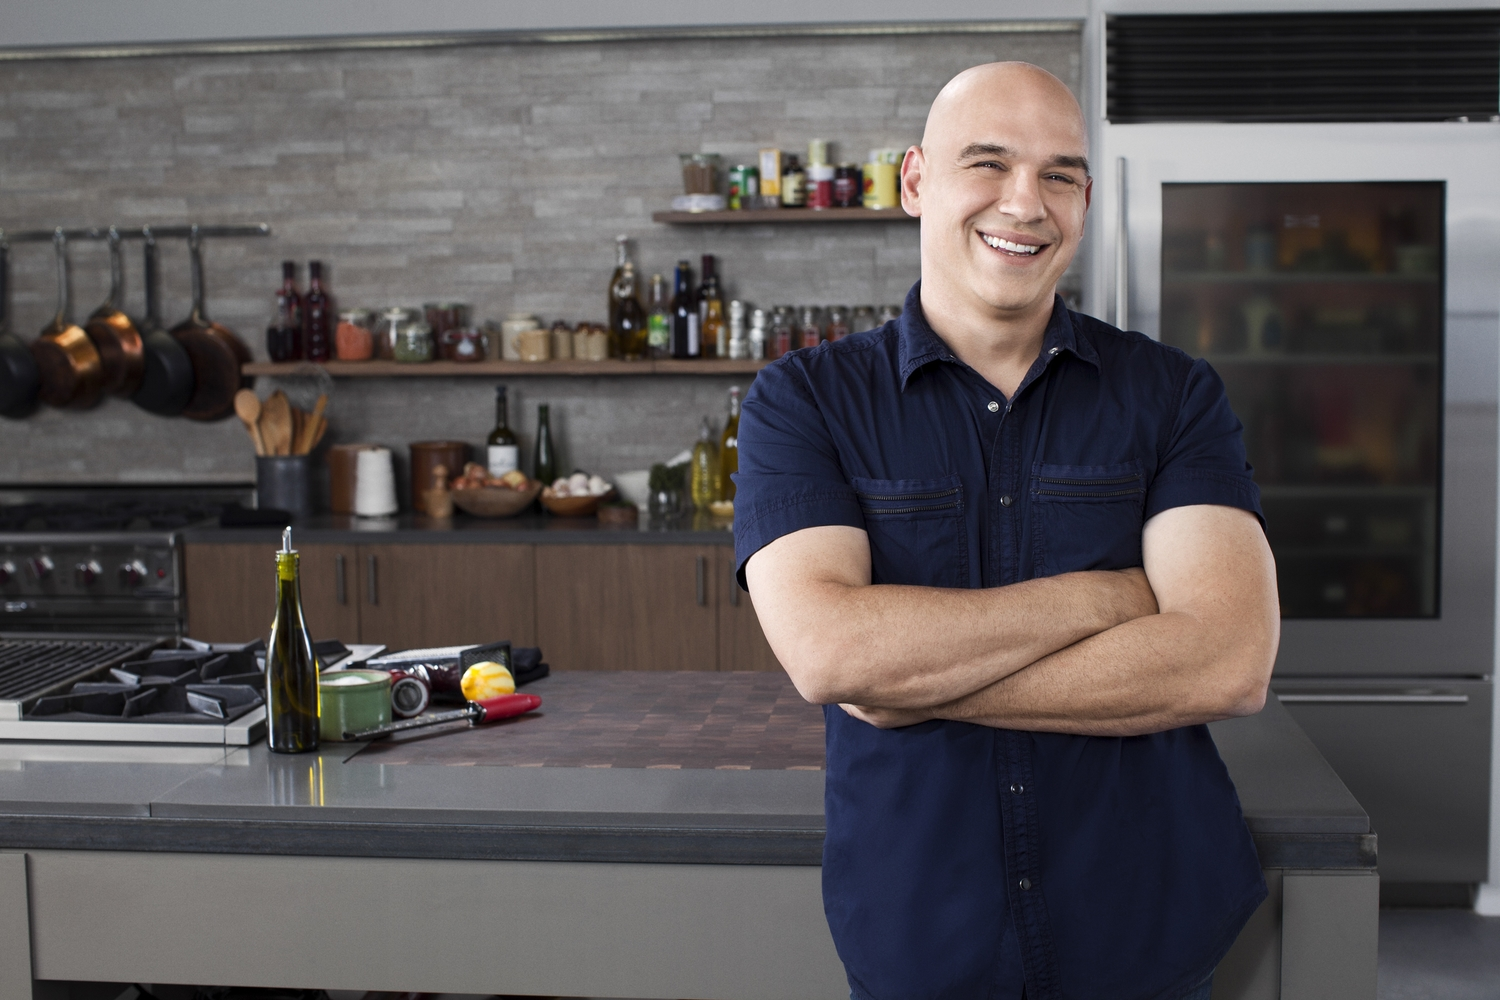 TV Chef Michael Symon on the recipe for a successful Super Bowl party